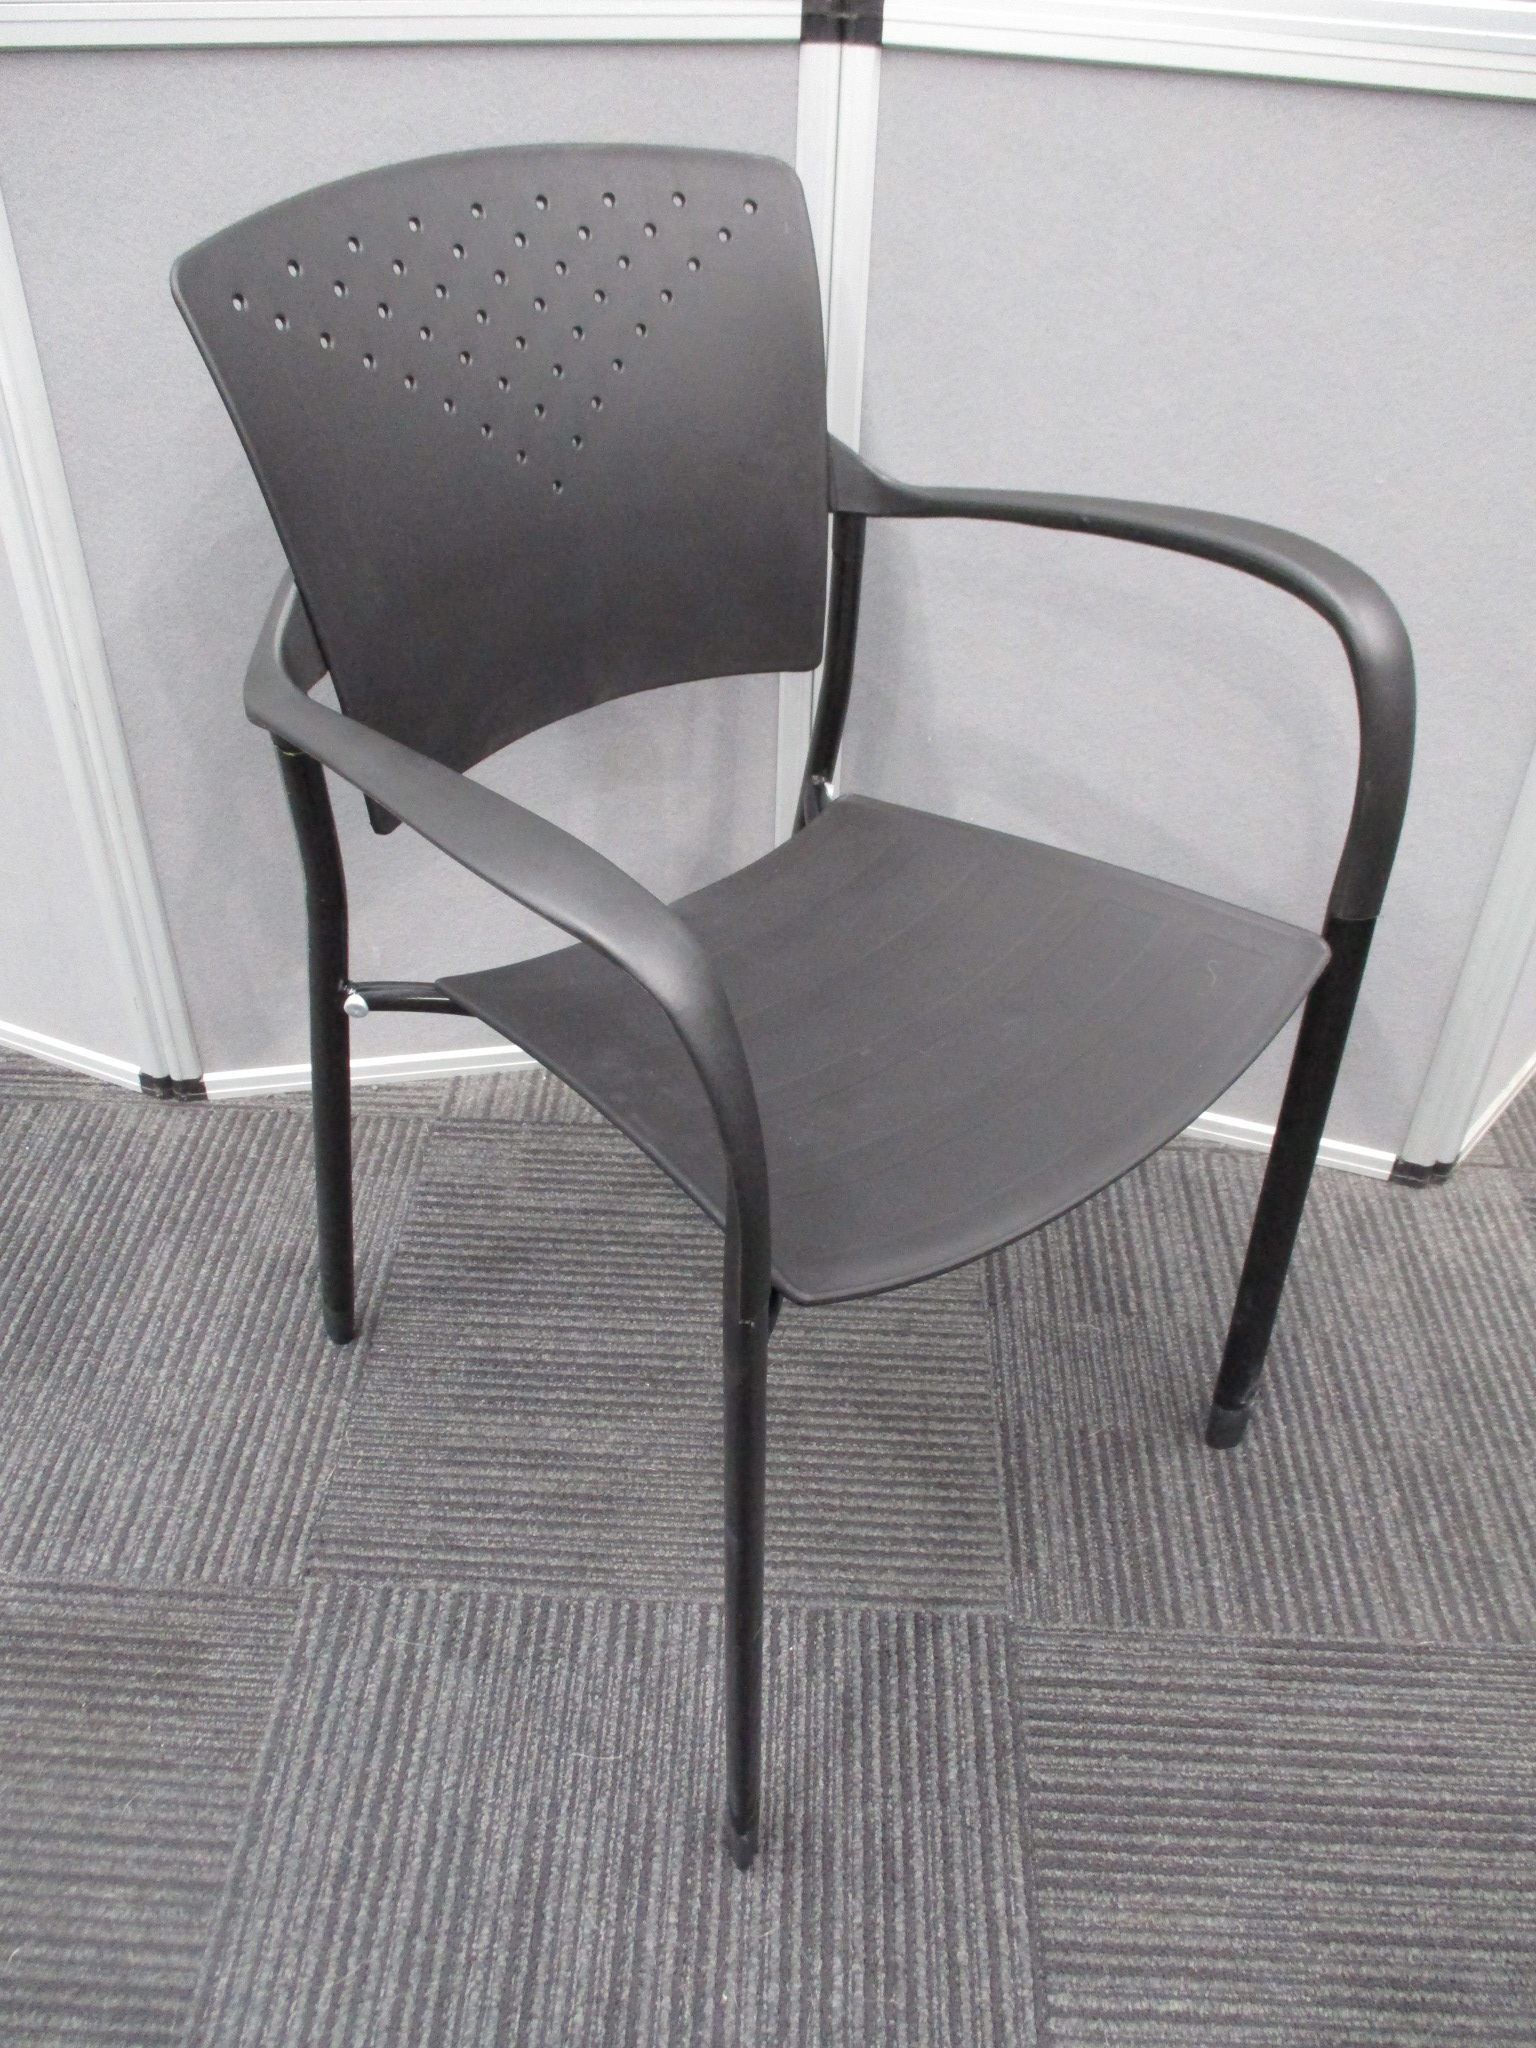 New Black Sienna Stacking Chairs $69